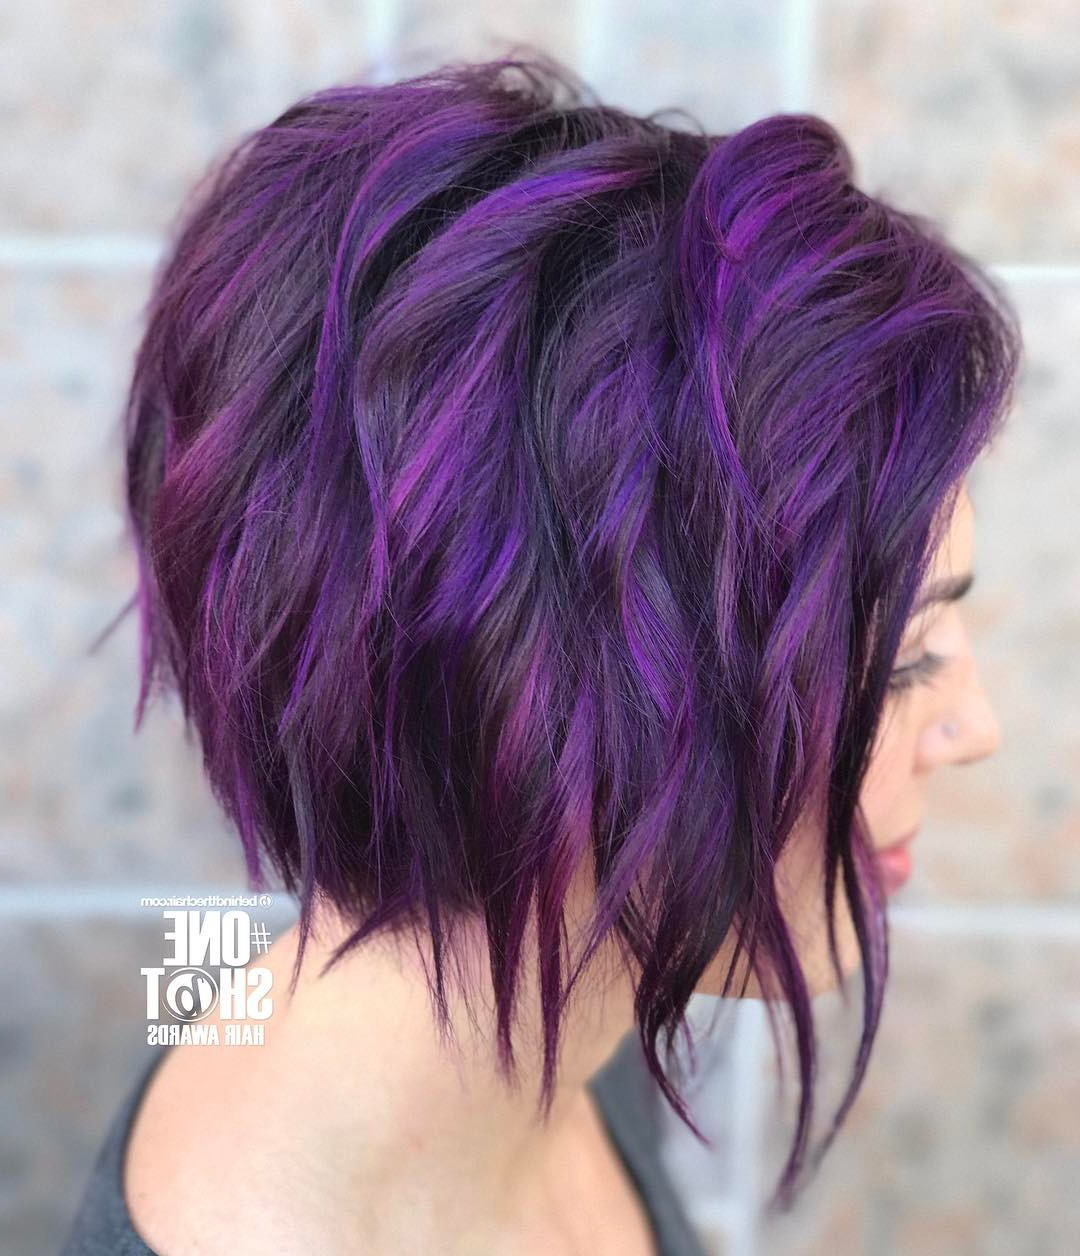 10 Chic Short Bob Haircuts That Balance Your Face Shape! With Trendy Medium Angled Purple Bob Hairstyles (View 10 of 20)